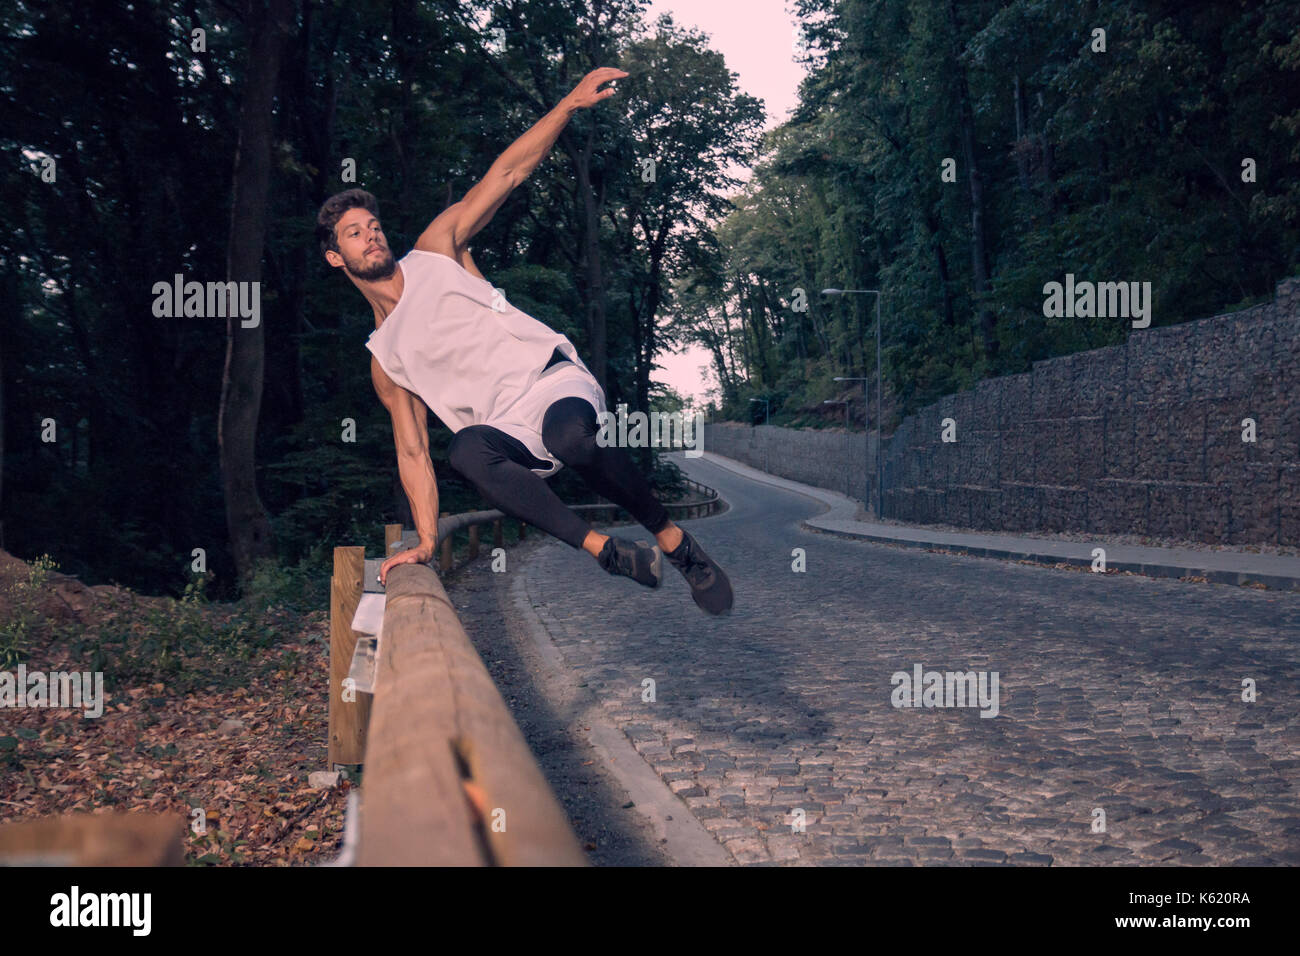 two young people, adventure, road forest outdoors, man jumping fence parkour, street stunt, rural area, jumping in air - Stock Image